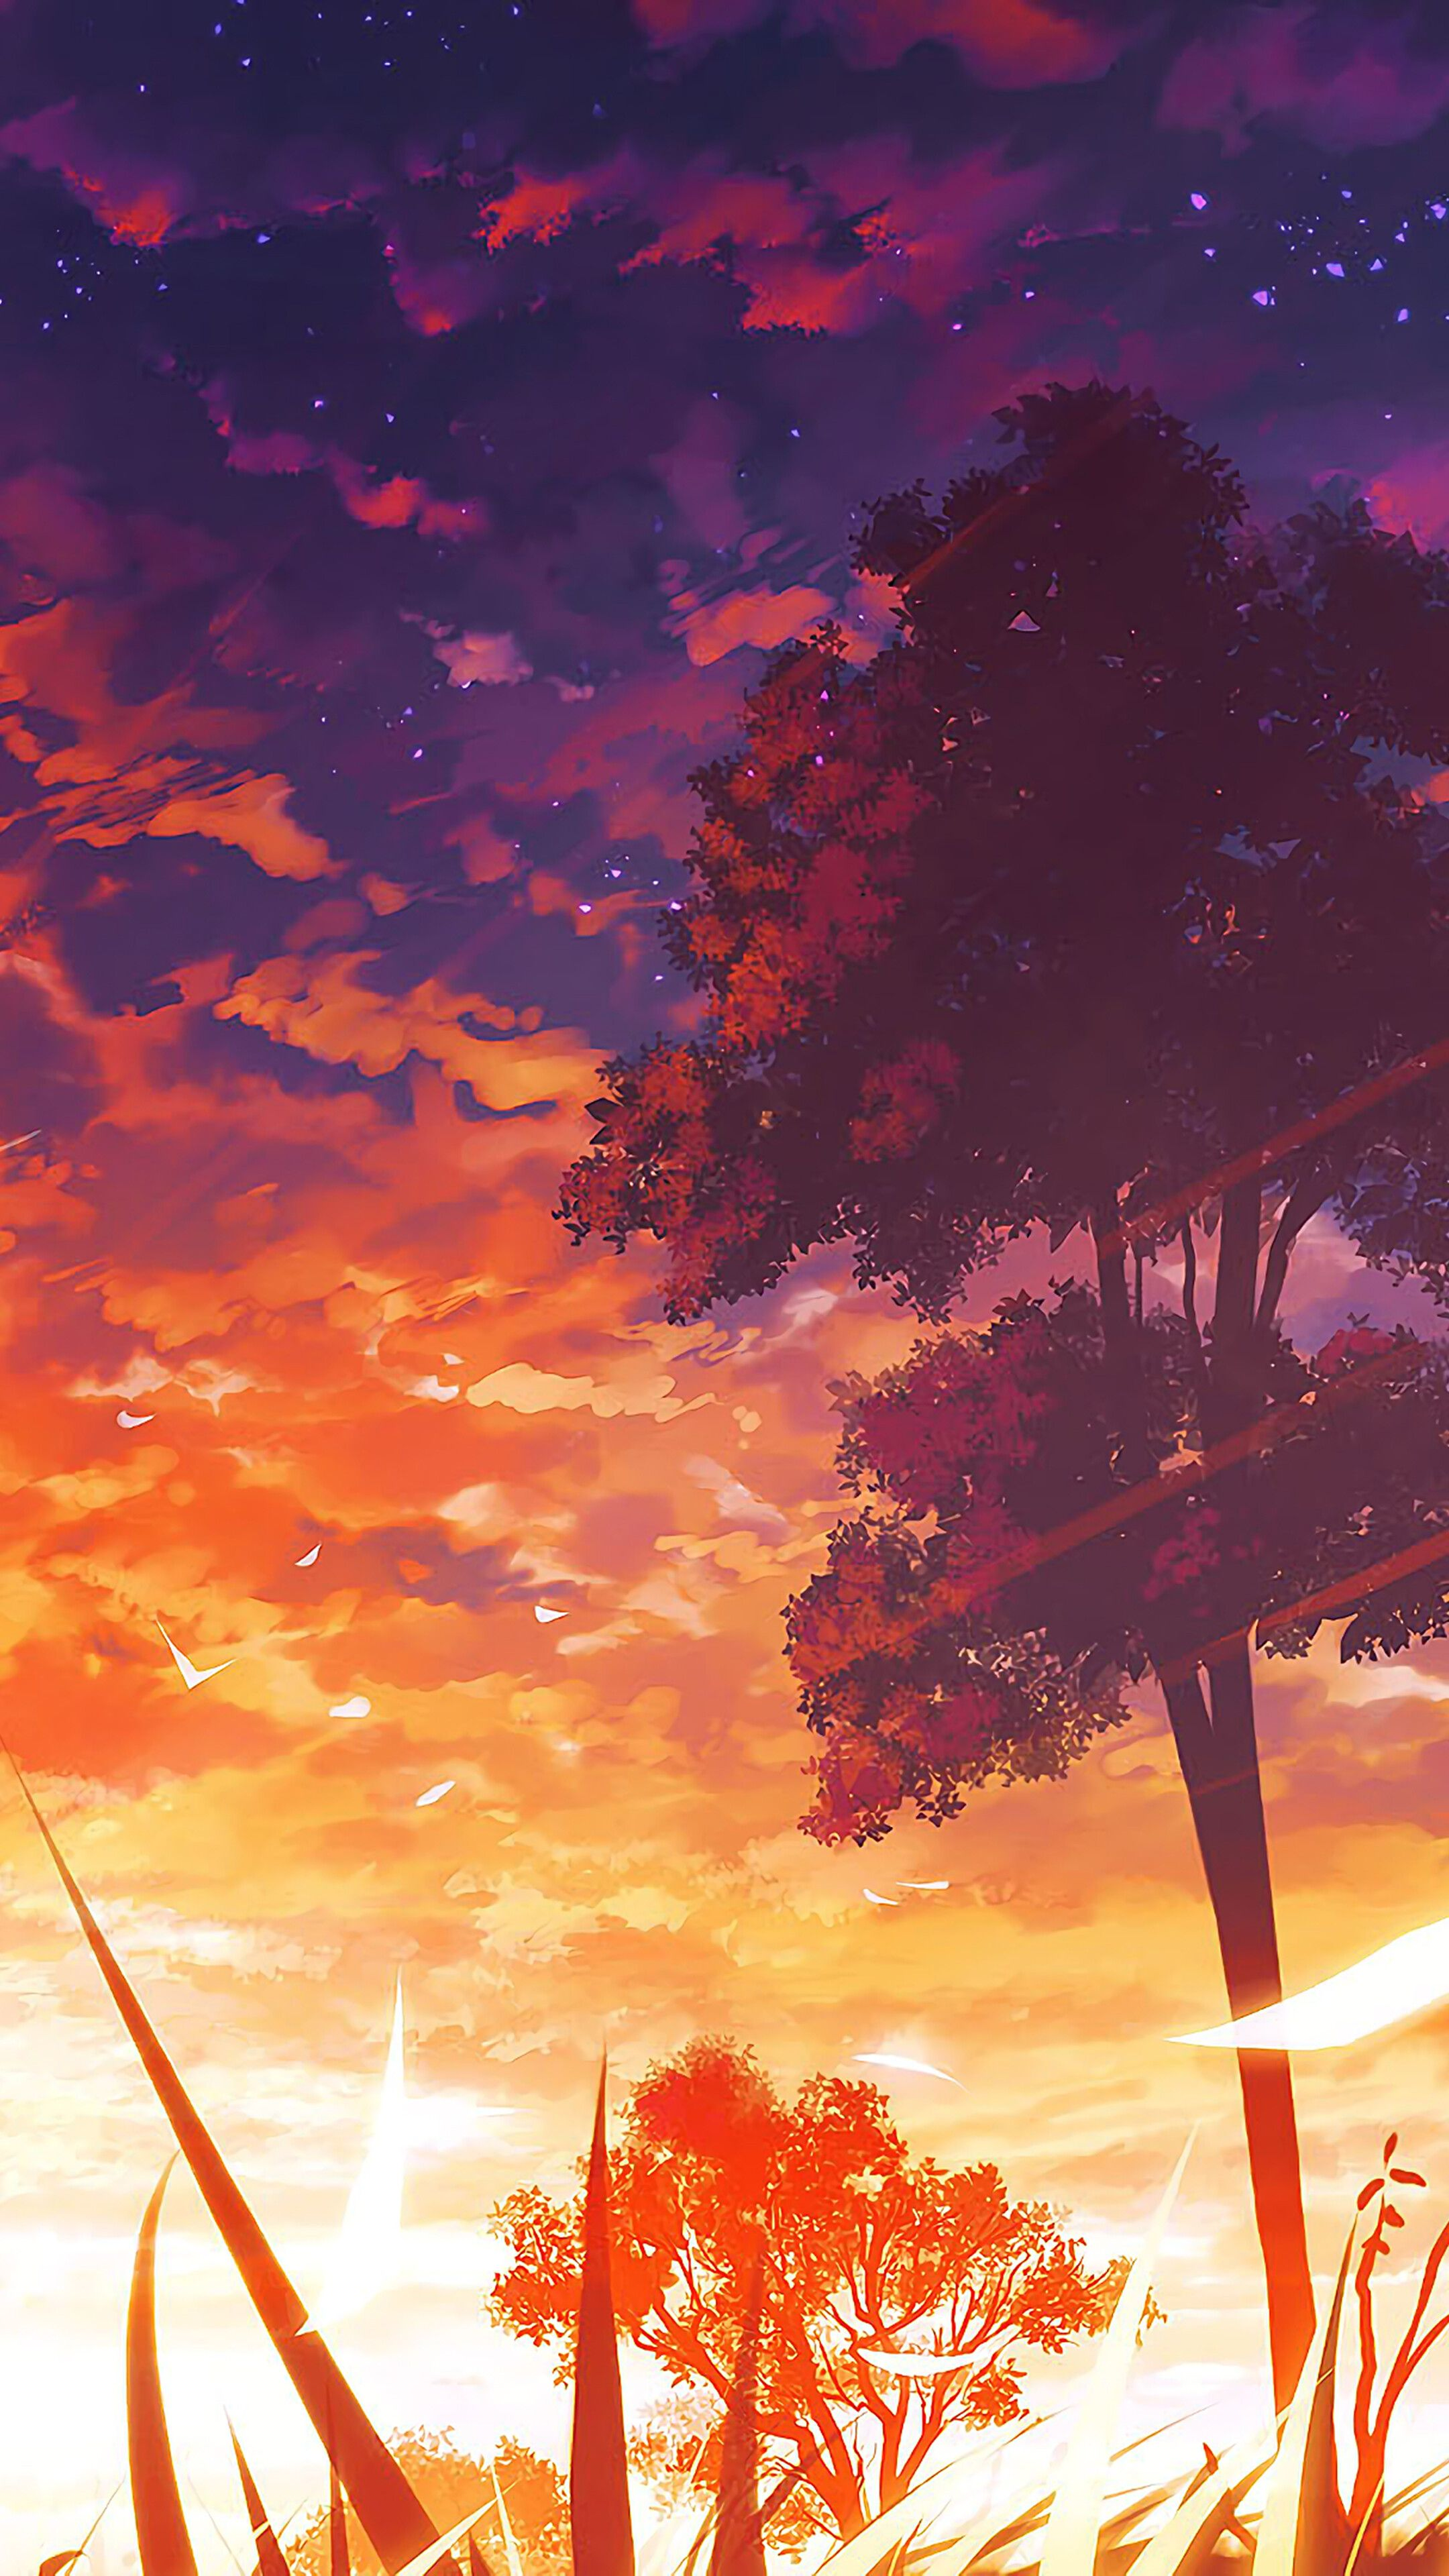 Anime Sunset And Trees Wallpapers - Wallpaper Cave